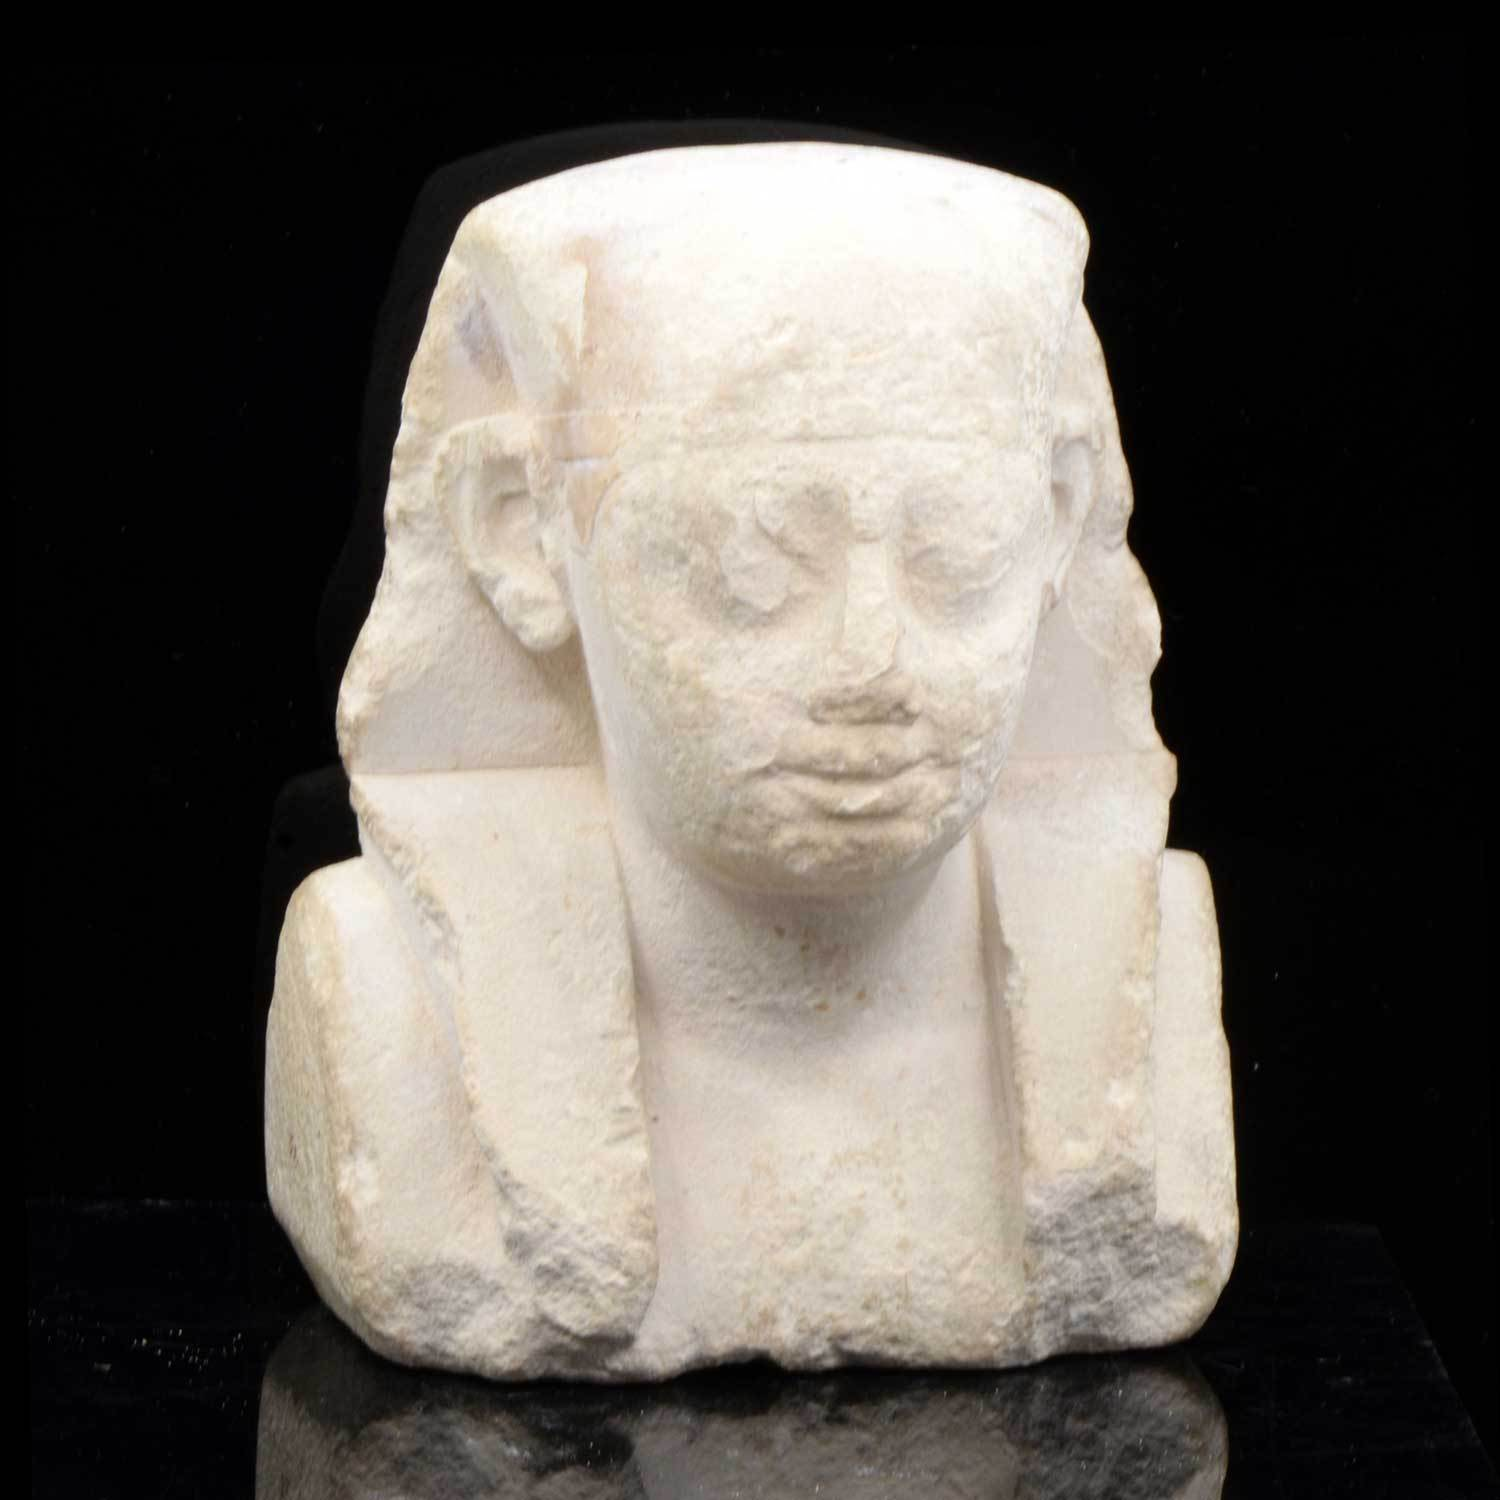 An Egyptian Limestone Sculptor's Model of a Pharaoh, Ptolemaic Period, ca. 332 - 30 BCE - Sands of Time Ancient Art